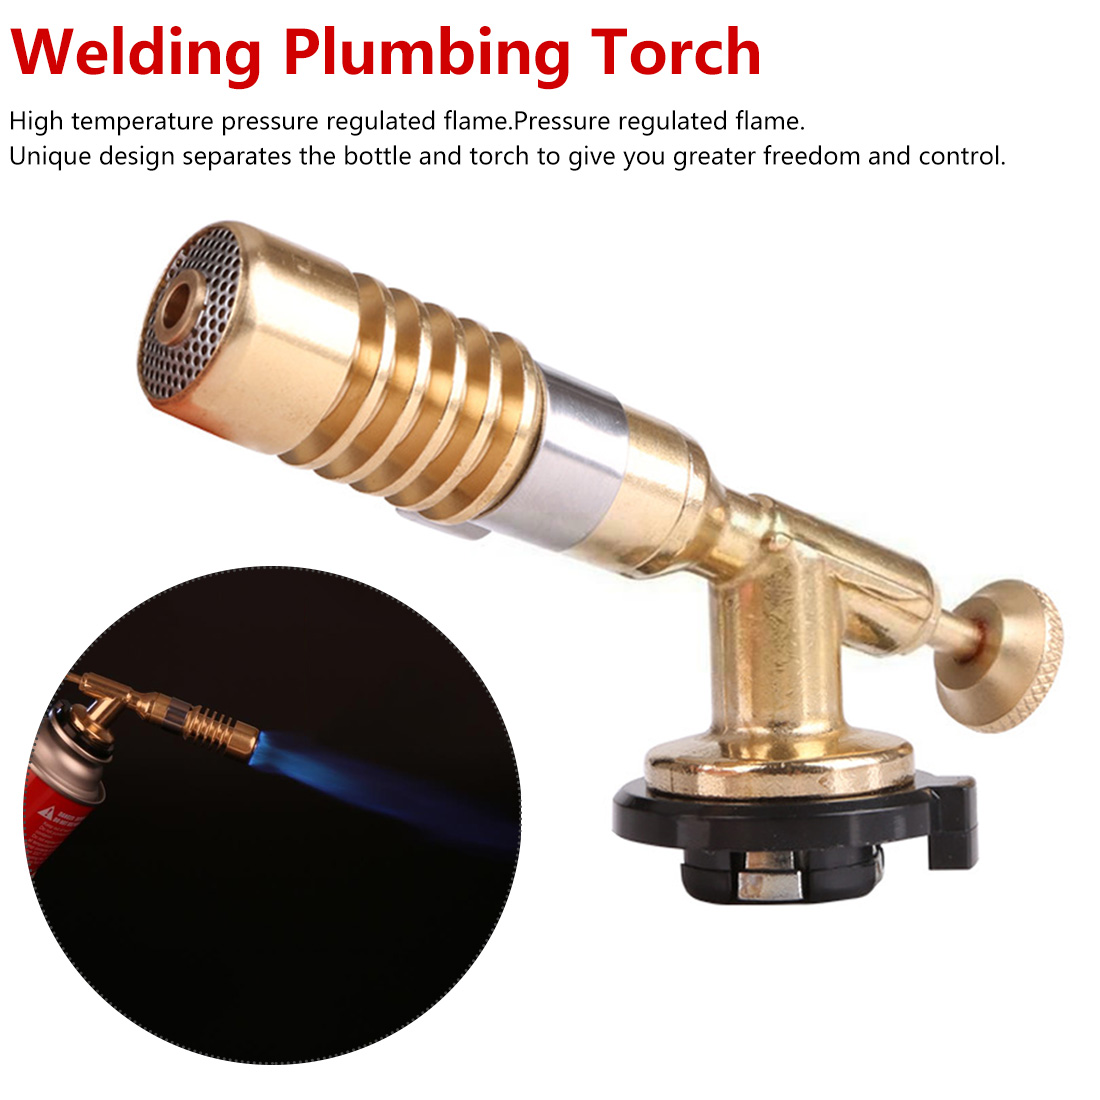 Adjustable High Temperature Gas High Temperature Brass Gas Turbo Torch Aluminum Brazing Propane Weld Plumbing